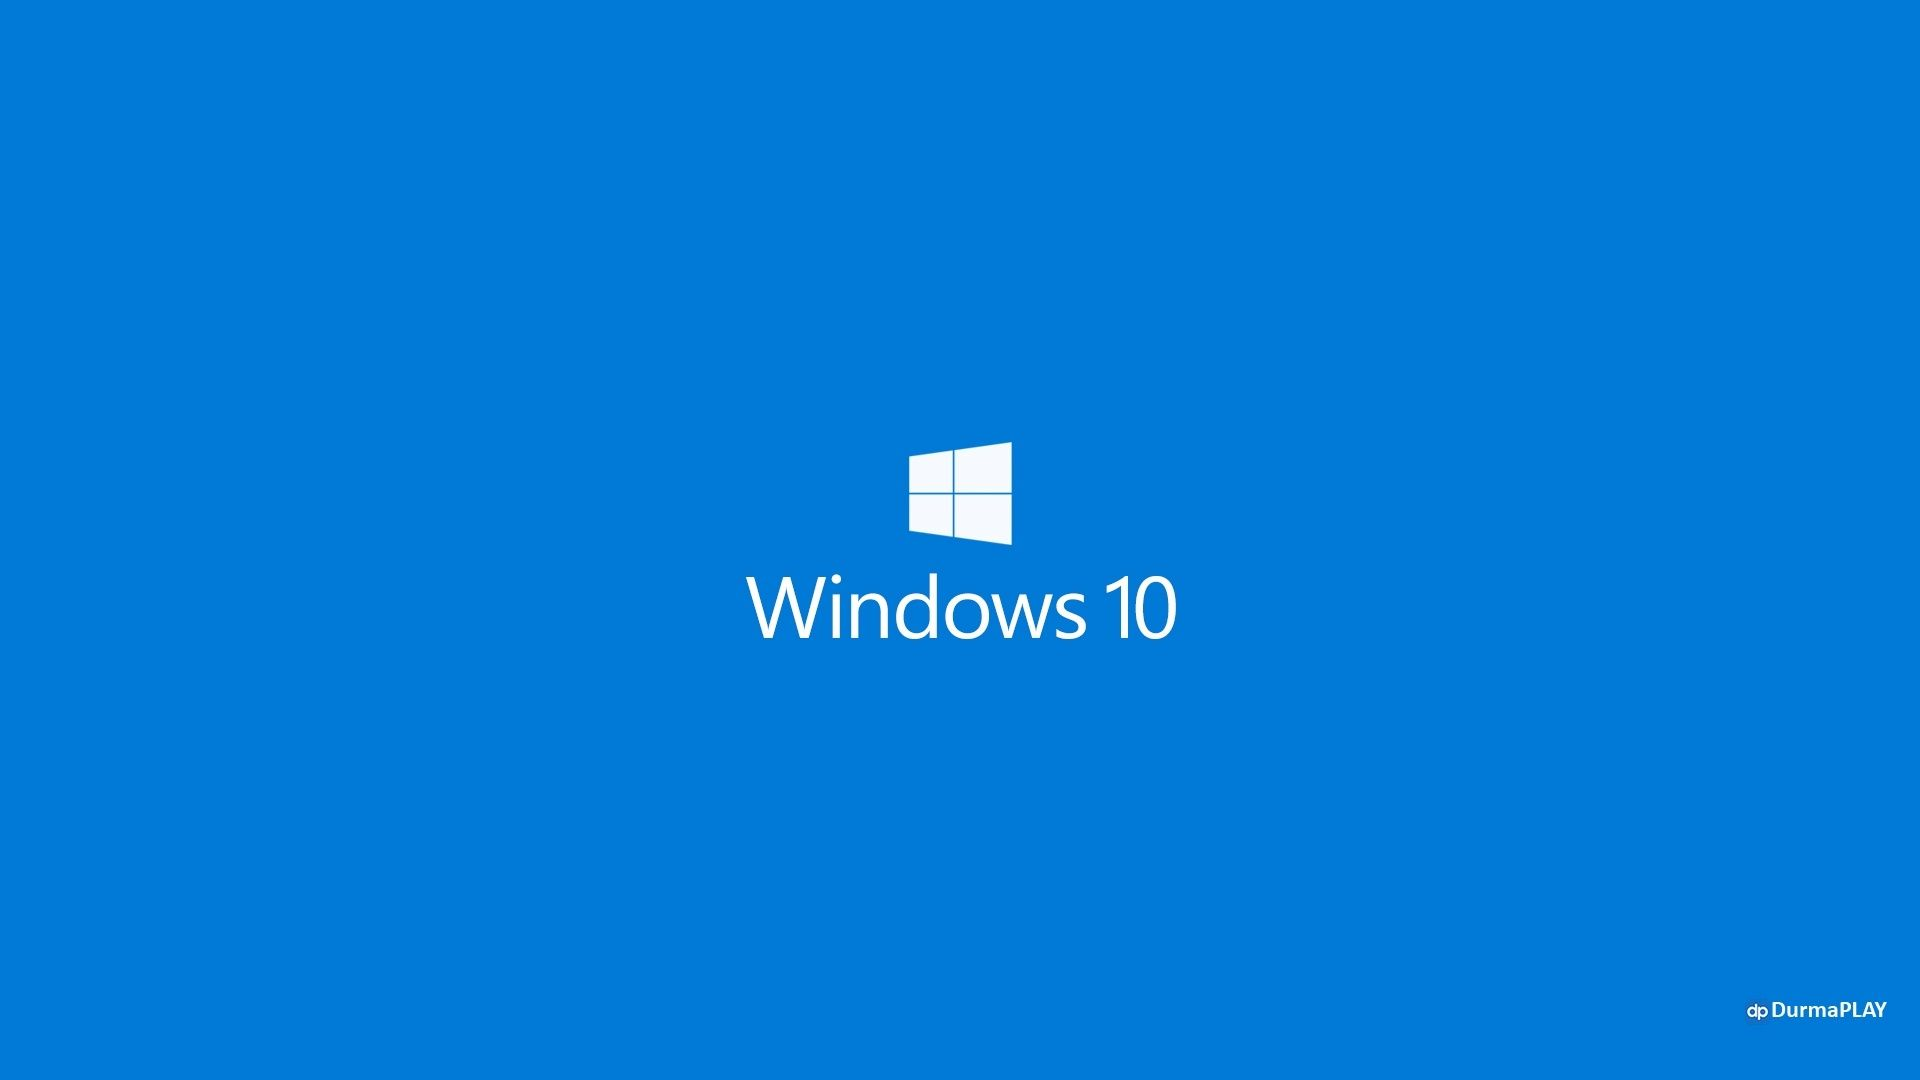 Windows 10 hd wallpaper httpgadgetsqibsomal20160121 windows 10 hd wallpaper httpgadgetsqibsomal20160121gadget windows 10 mobile update for older phones delayed142attachmentwindows 1 ccuart Images